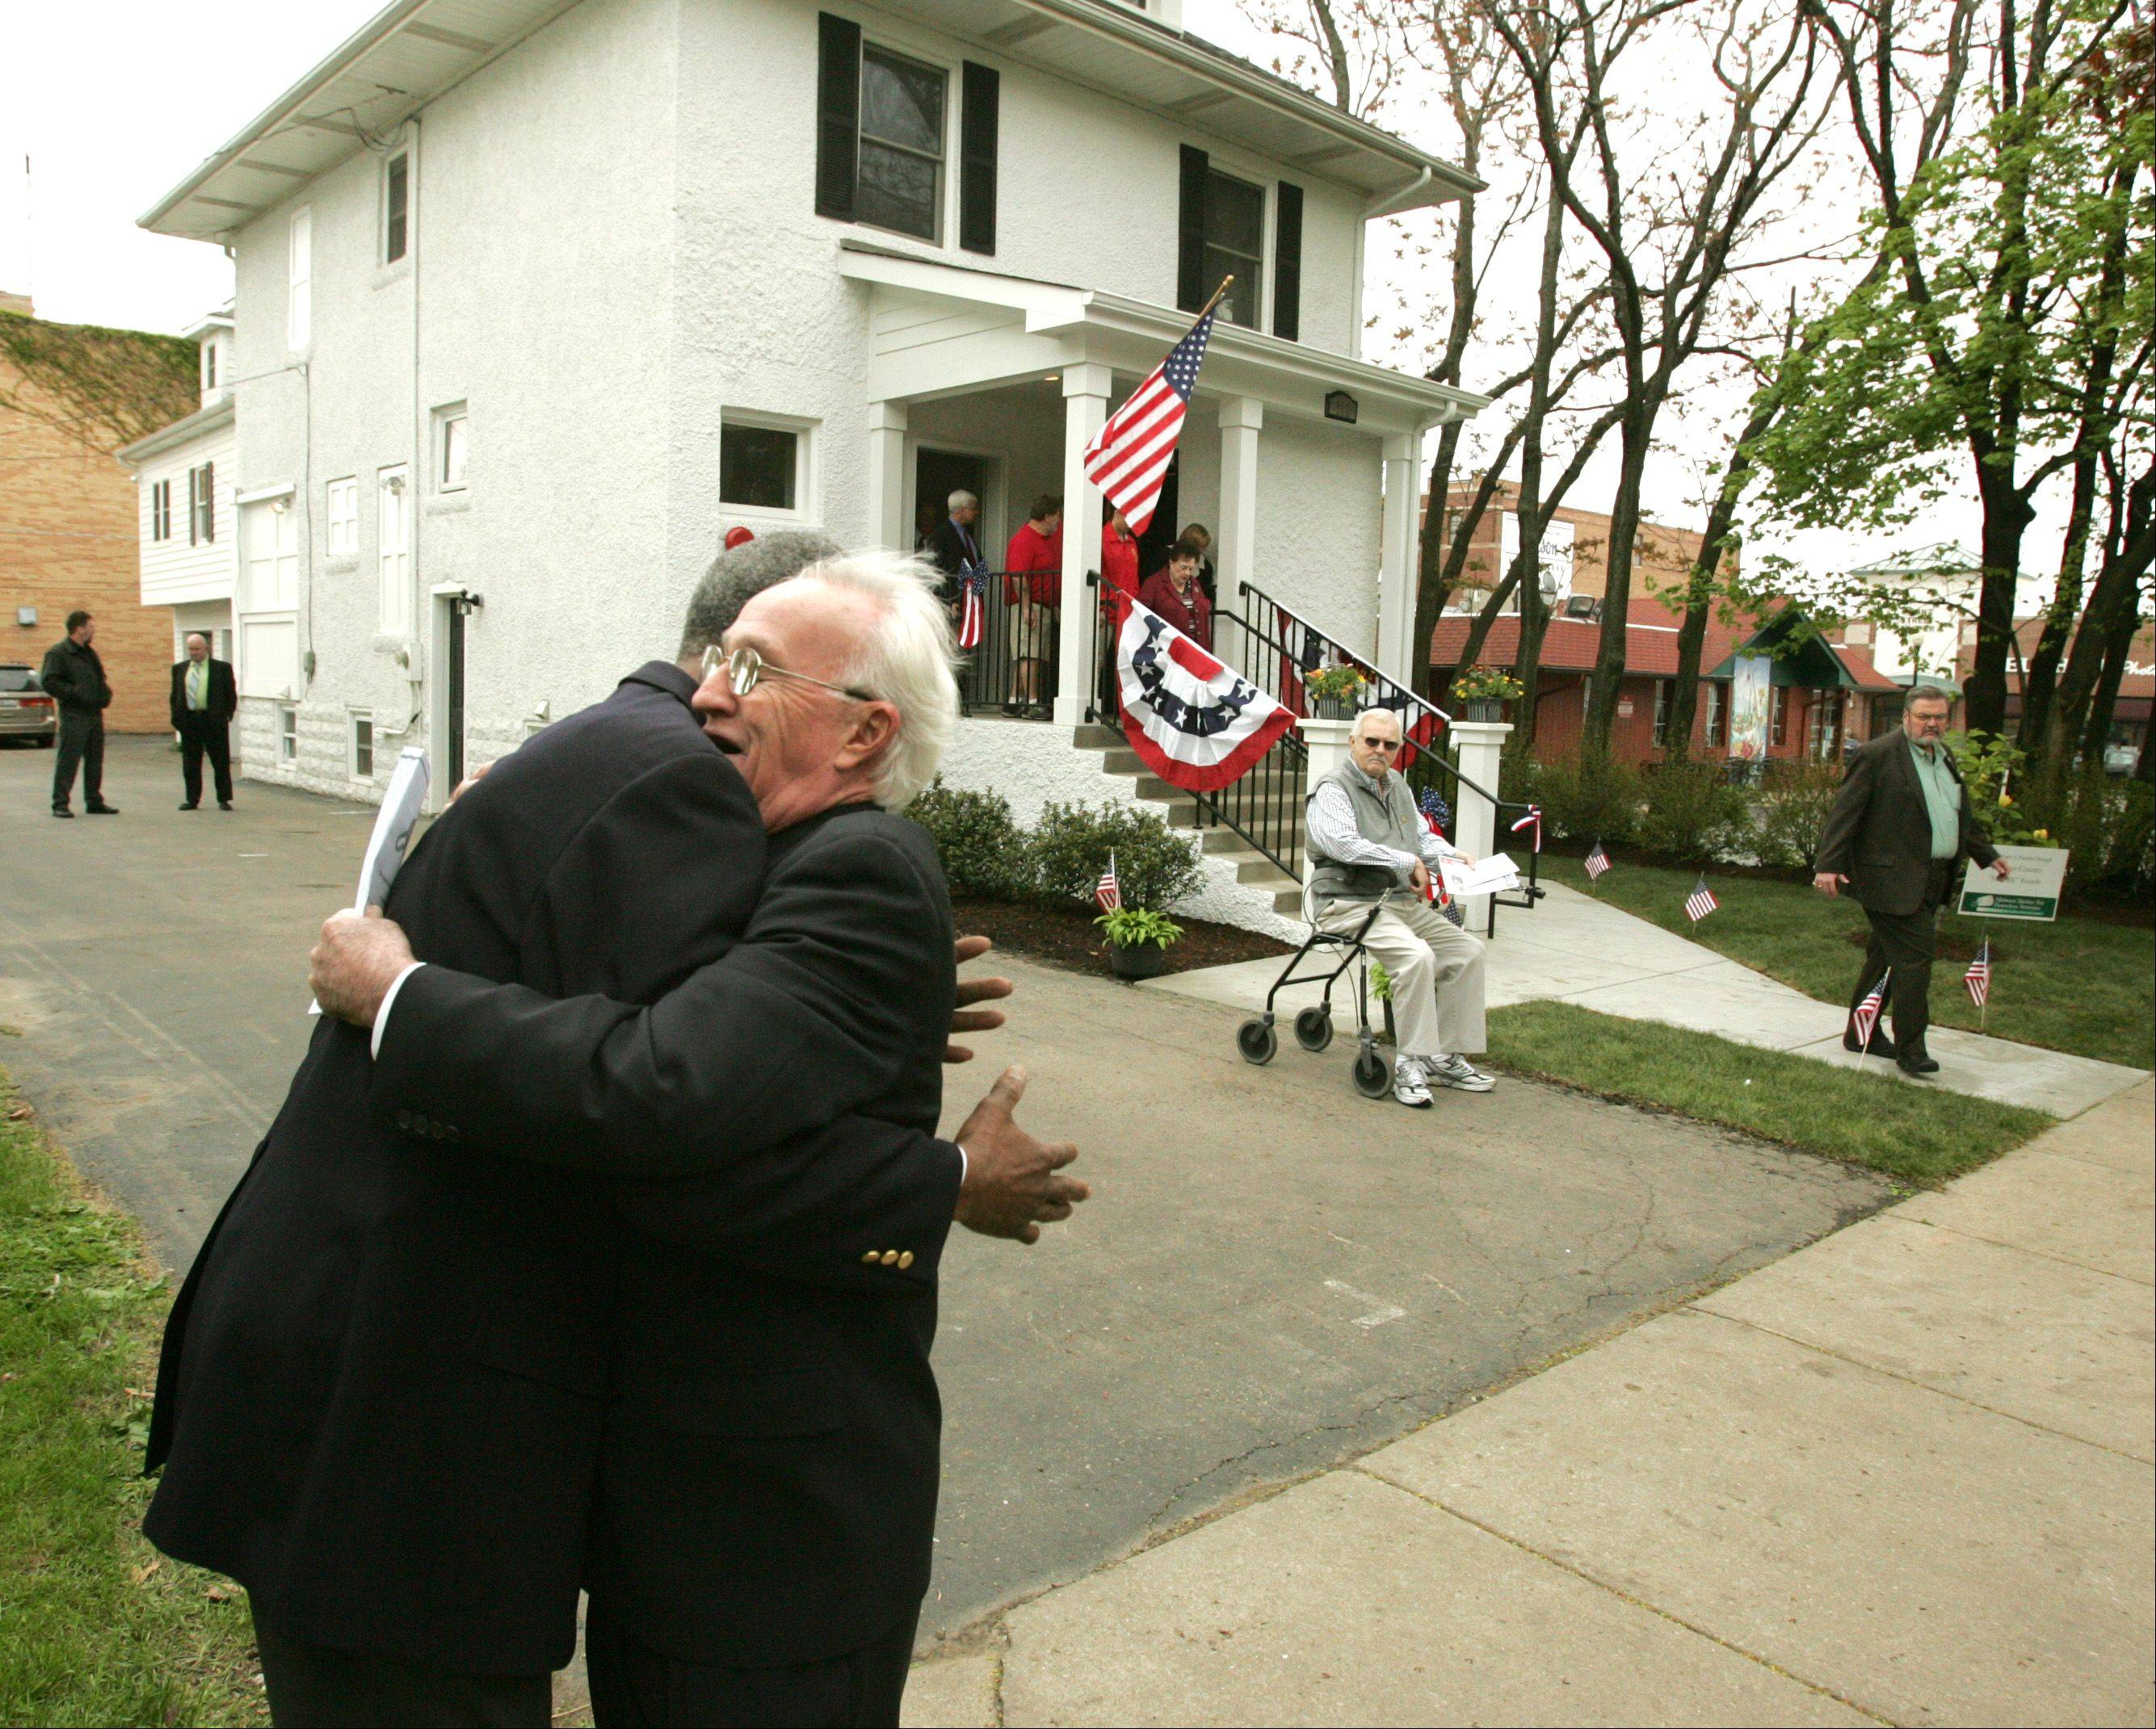 The Midwest Shelter for Homeless Veterans in Wheaton dedicates its new home for veterans in honor of Staff Sgt. Robert J. Miller, who received the Medal of Honor after being Killed in 2008 in Afghanistan. Above, Bob Adams, right, president of the Midwest Shelter Board, greets veteran Gordon Burkhalter following the dedication.